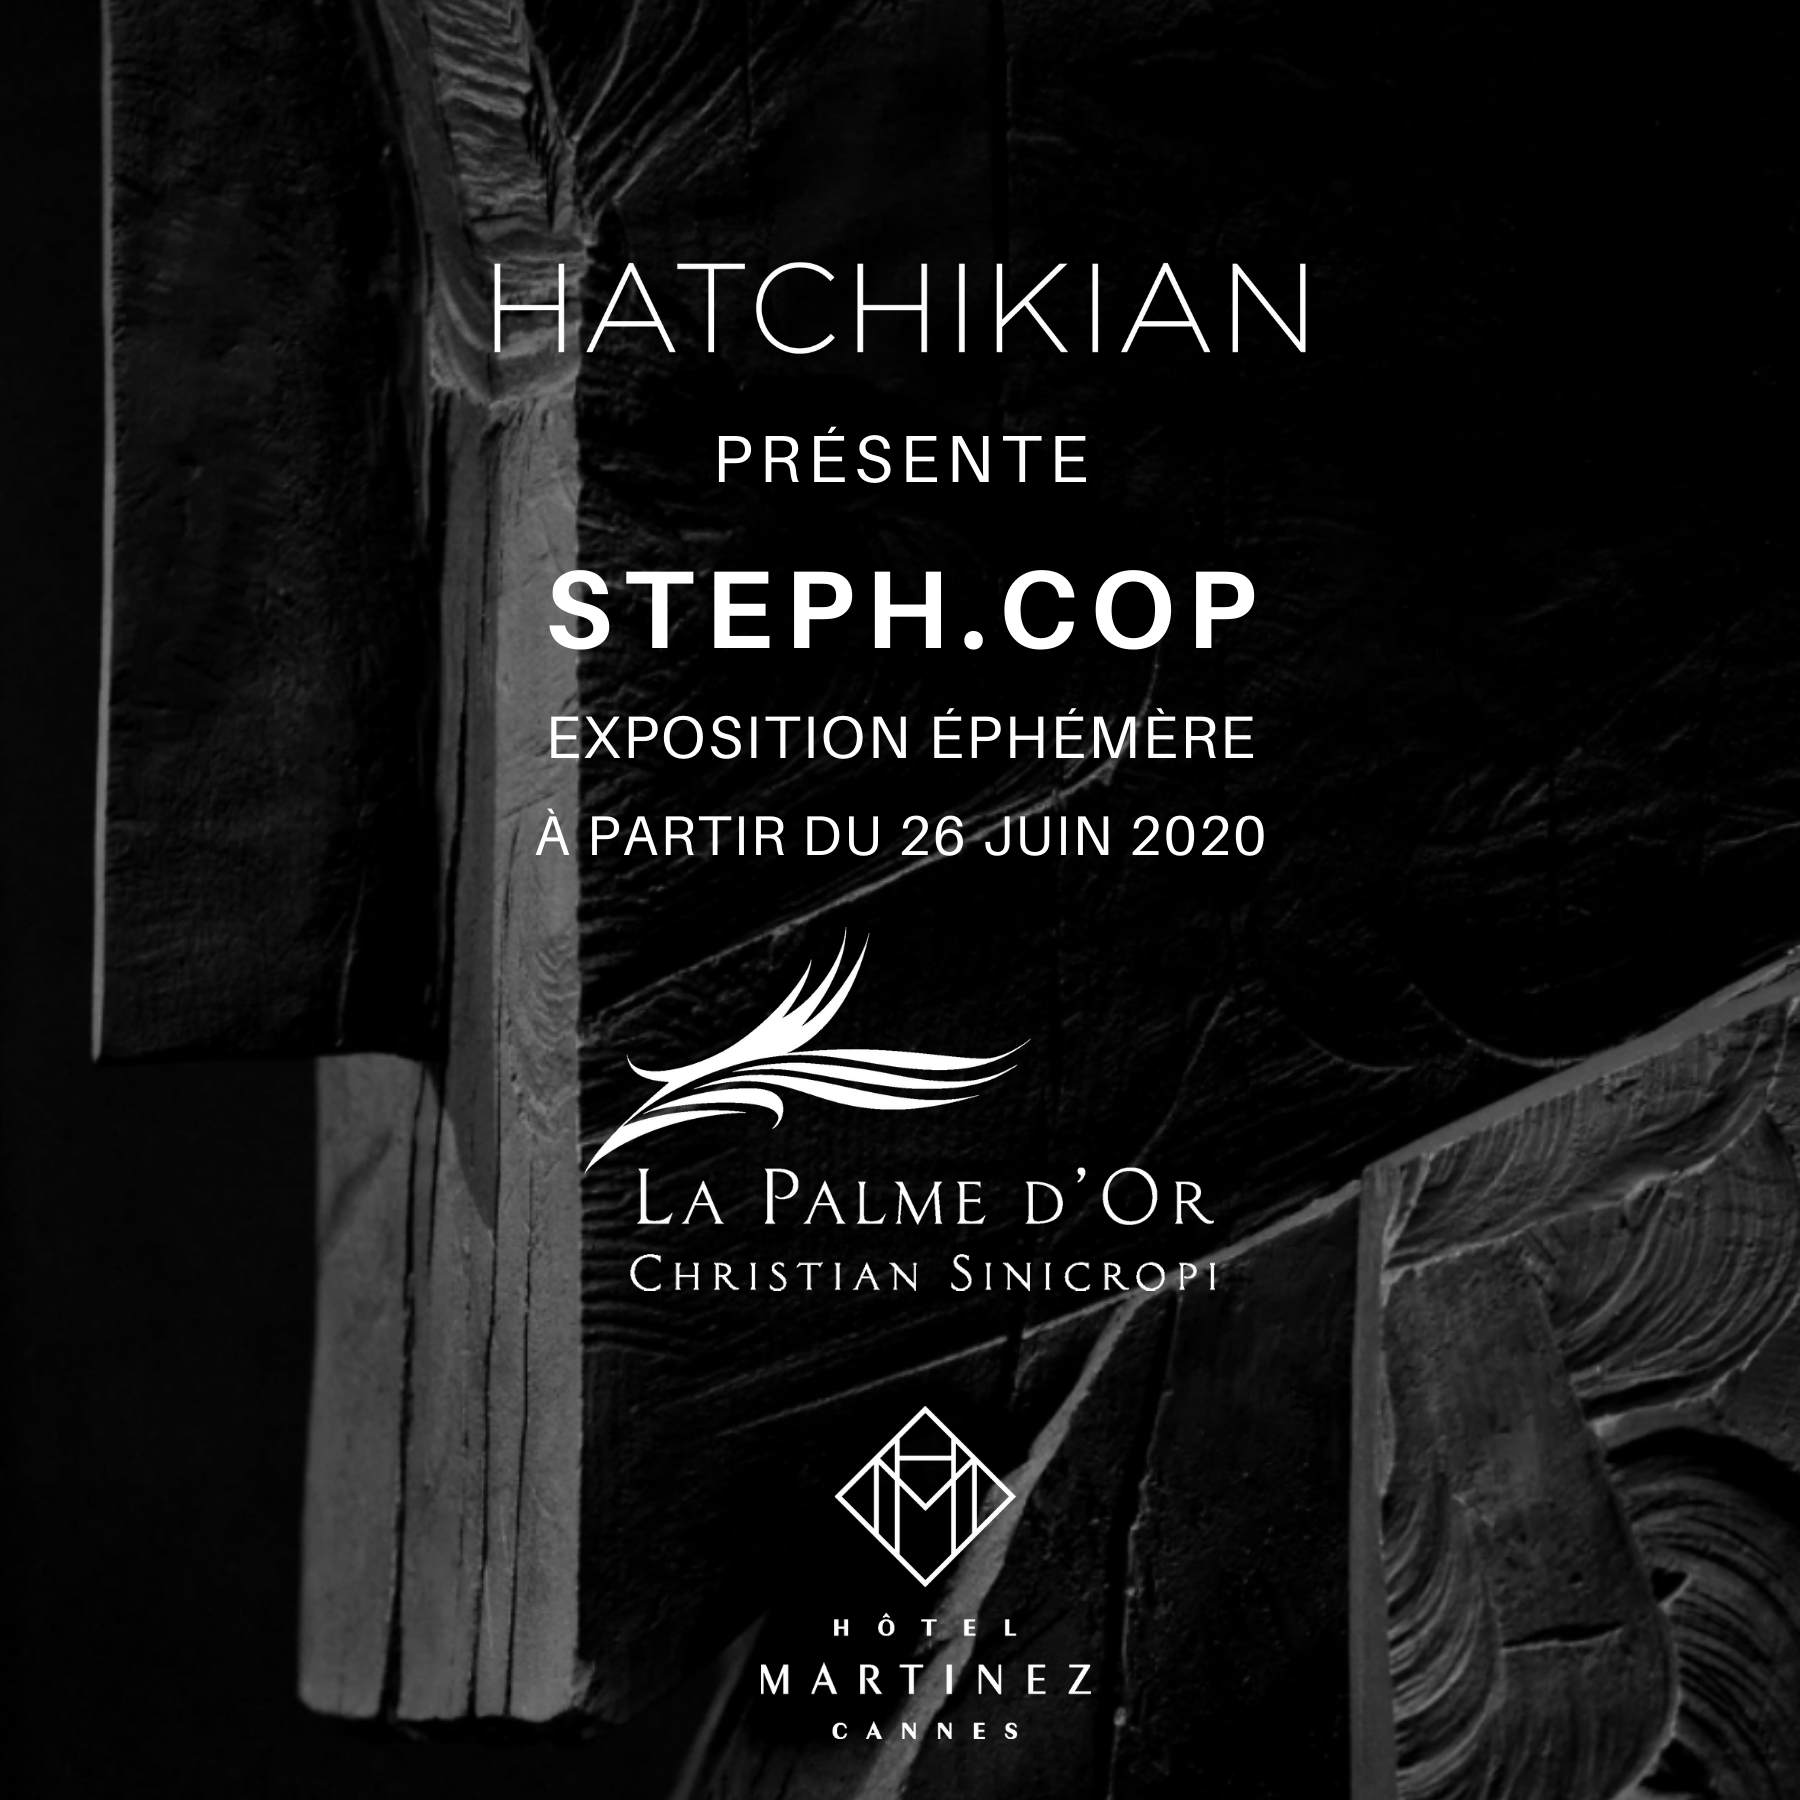 hatchikian-gallery-steph-cop-hotel-martinez-palme-d-or-christian-sinicropi-cannes-